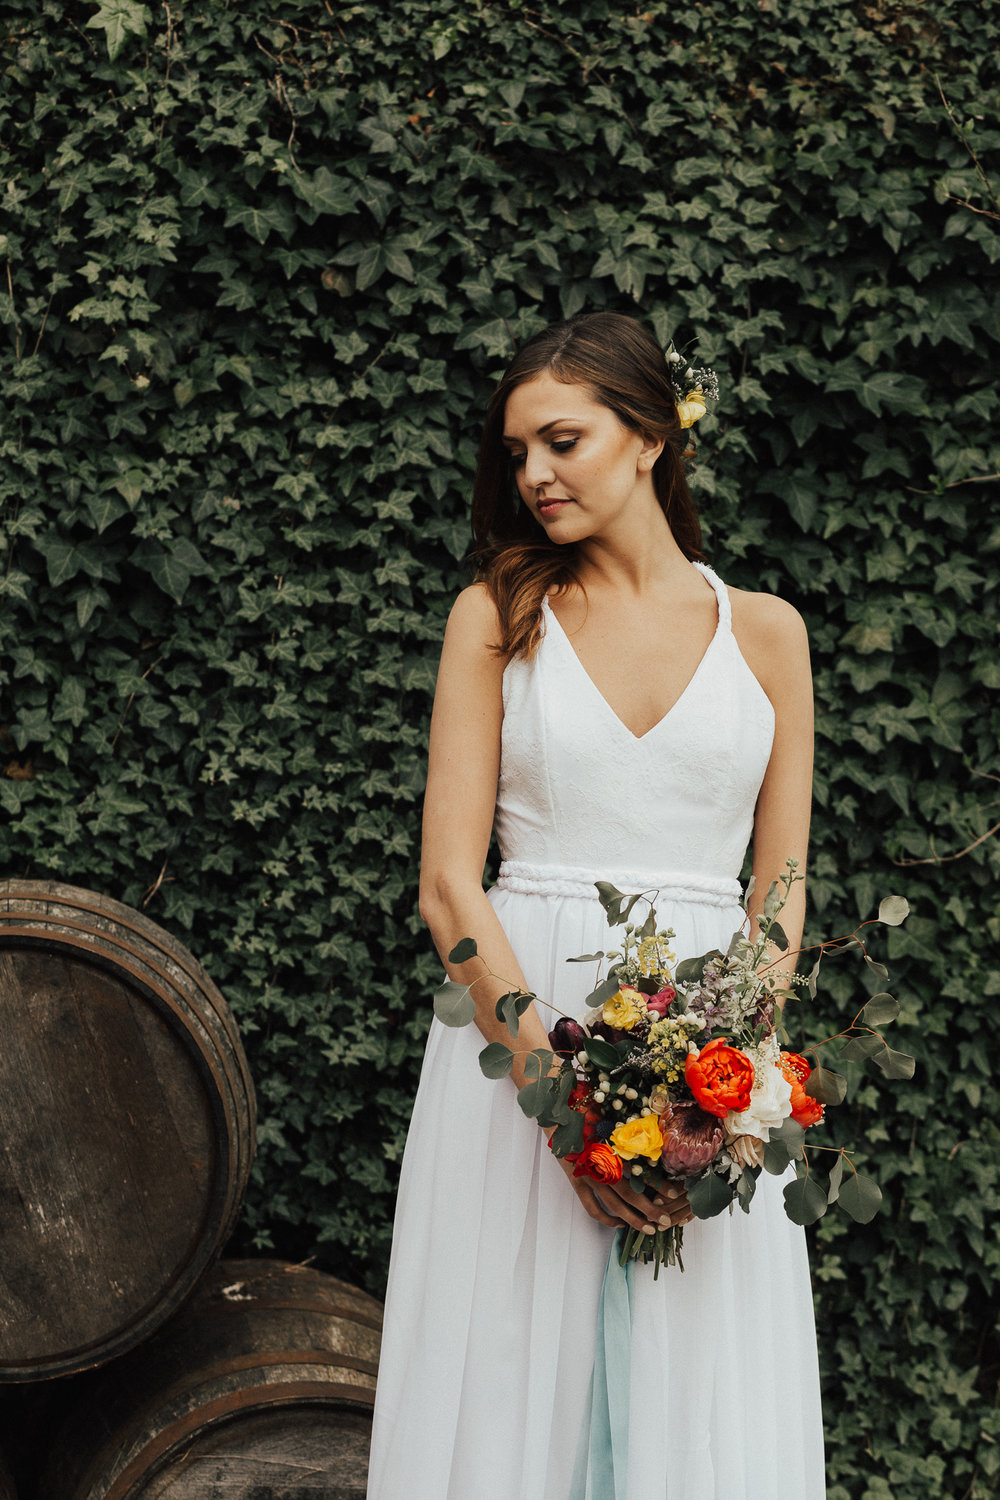 Ashley Steffens Photography Styled Shoot Summer Festival 11